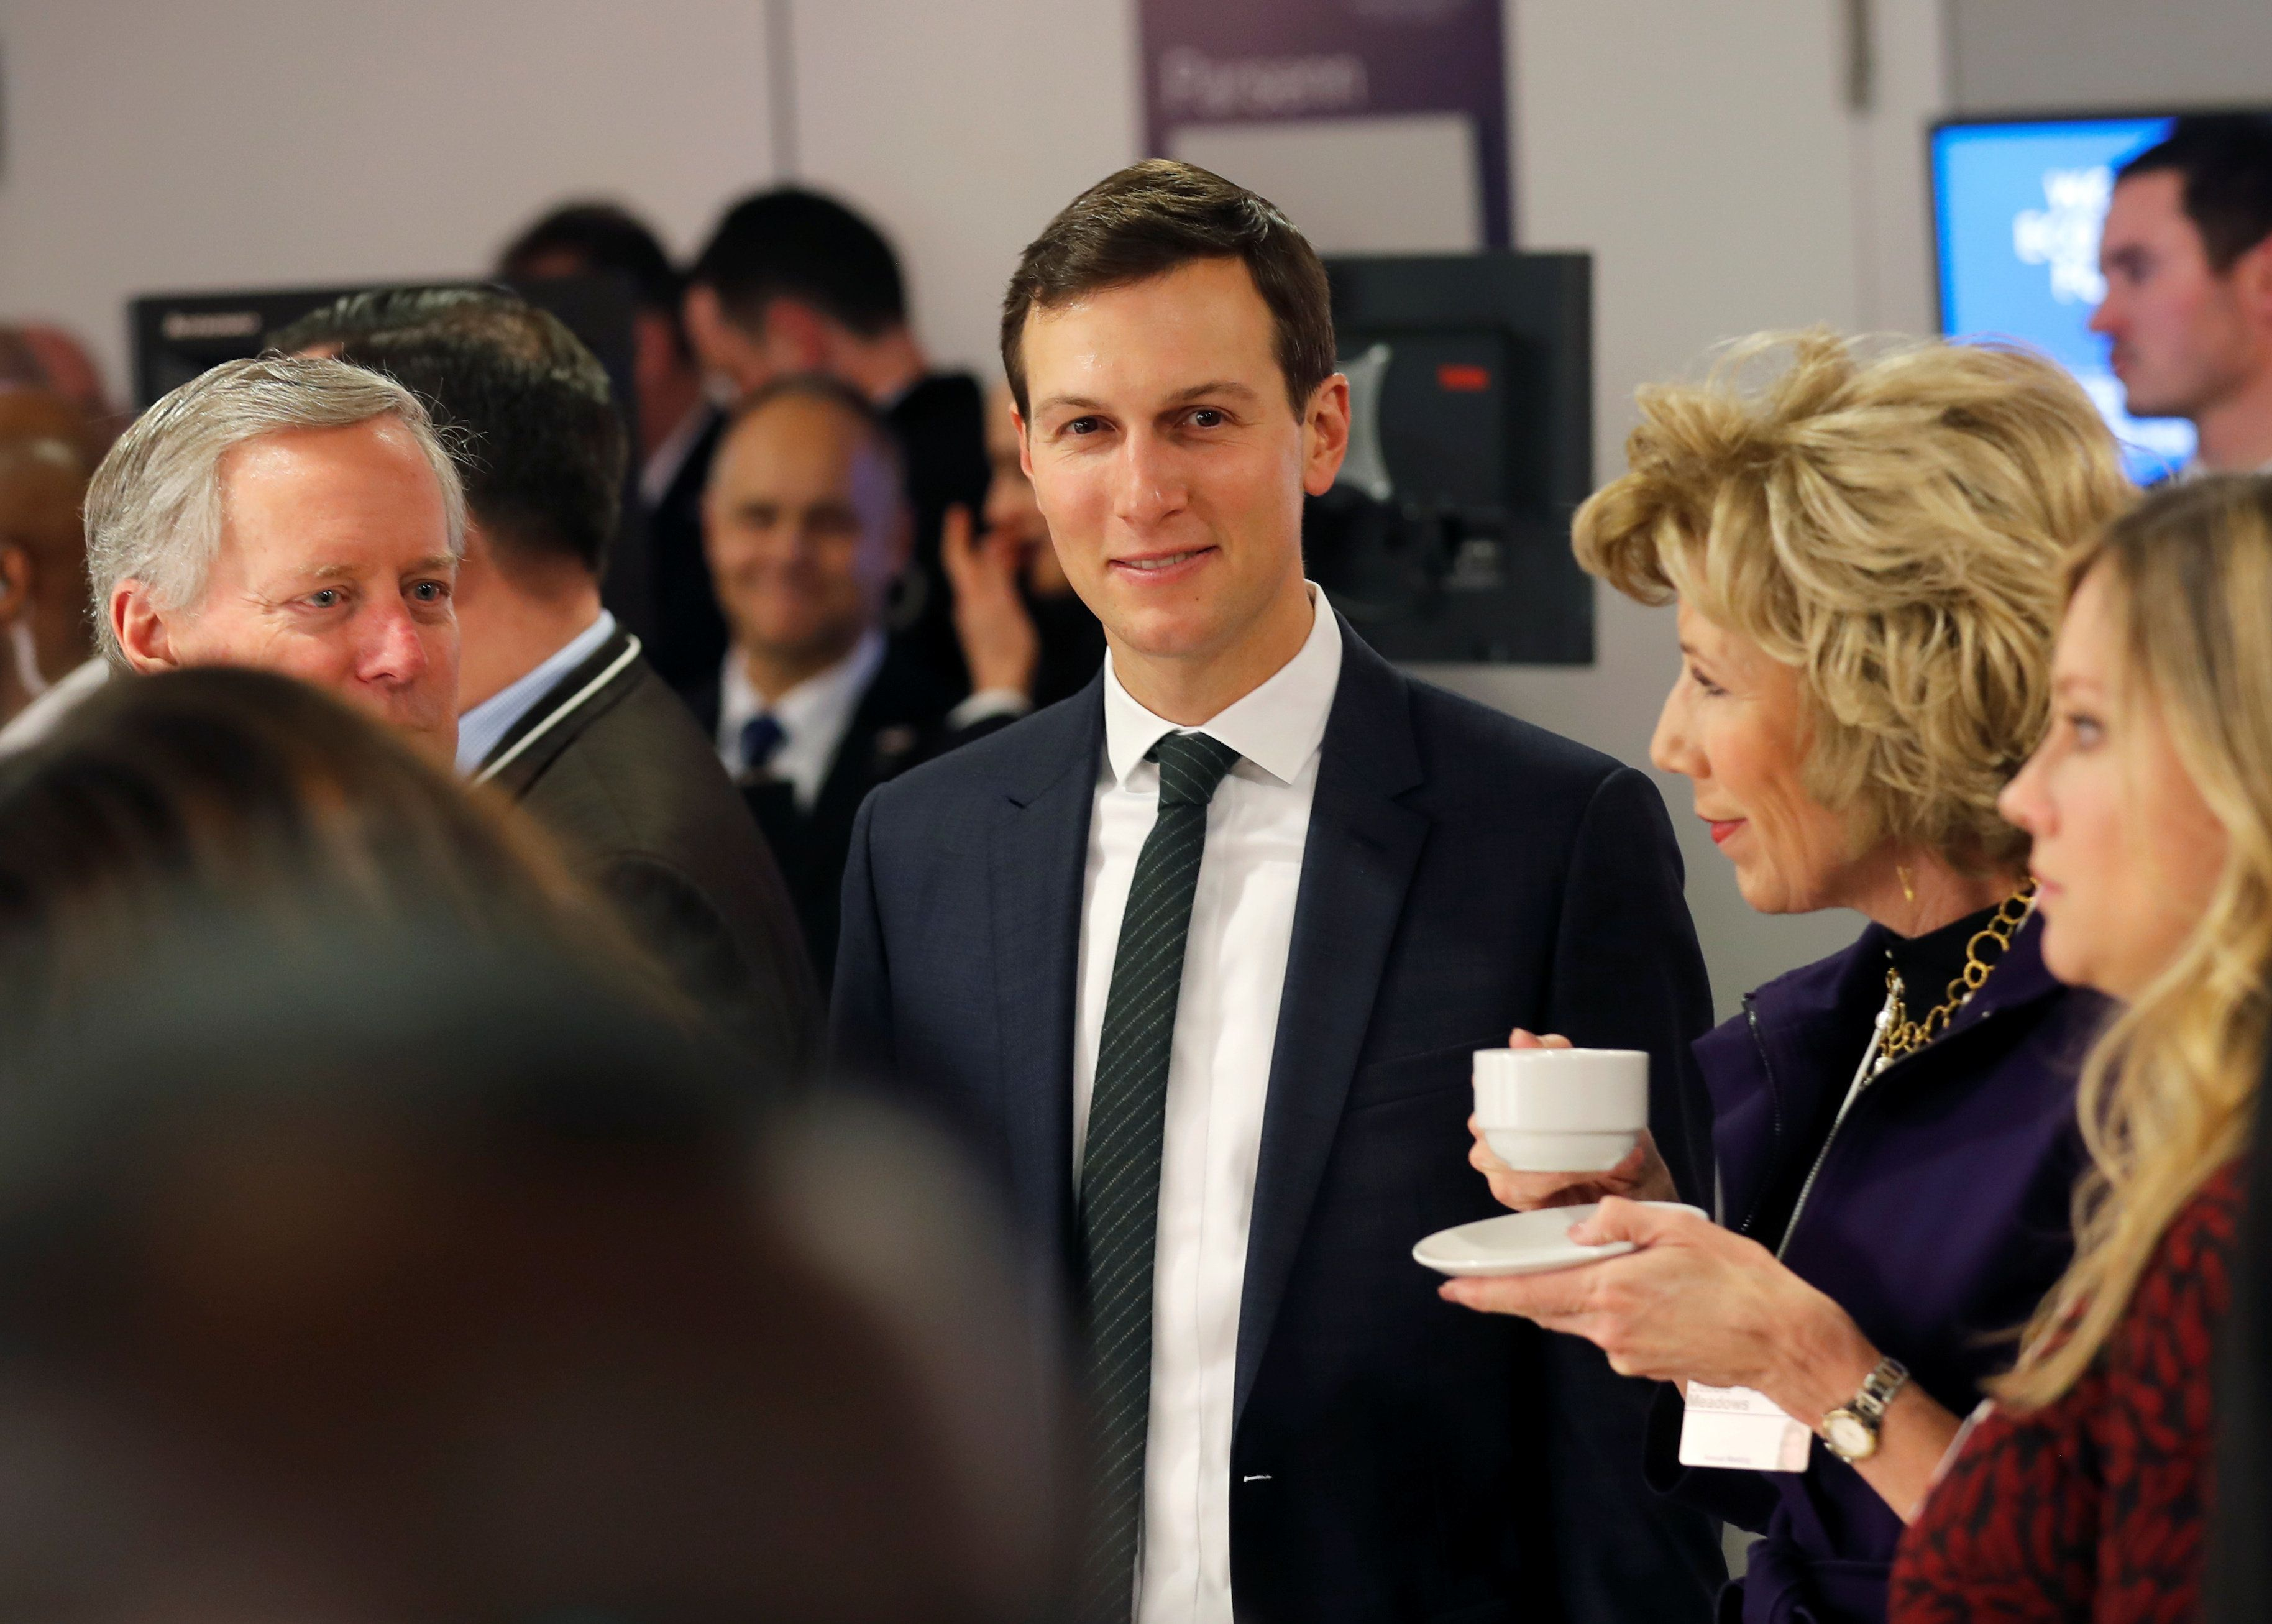 Senior Advisor to the U.S. President Donald Trump Jared Kushner attends the World Economic Forum (WEF) annual meeting in Davos, Switzerland January 25, 2018 REUTERS/Carlos Barria